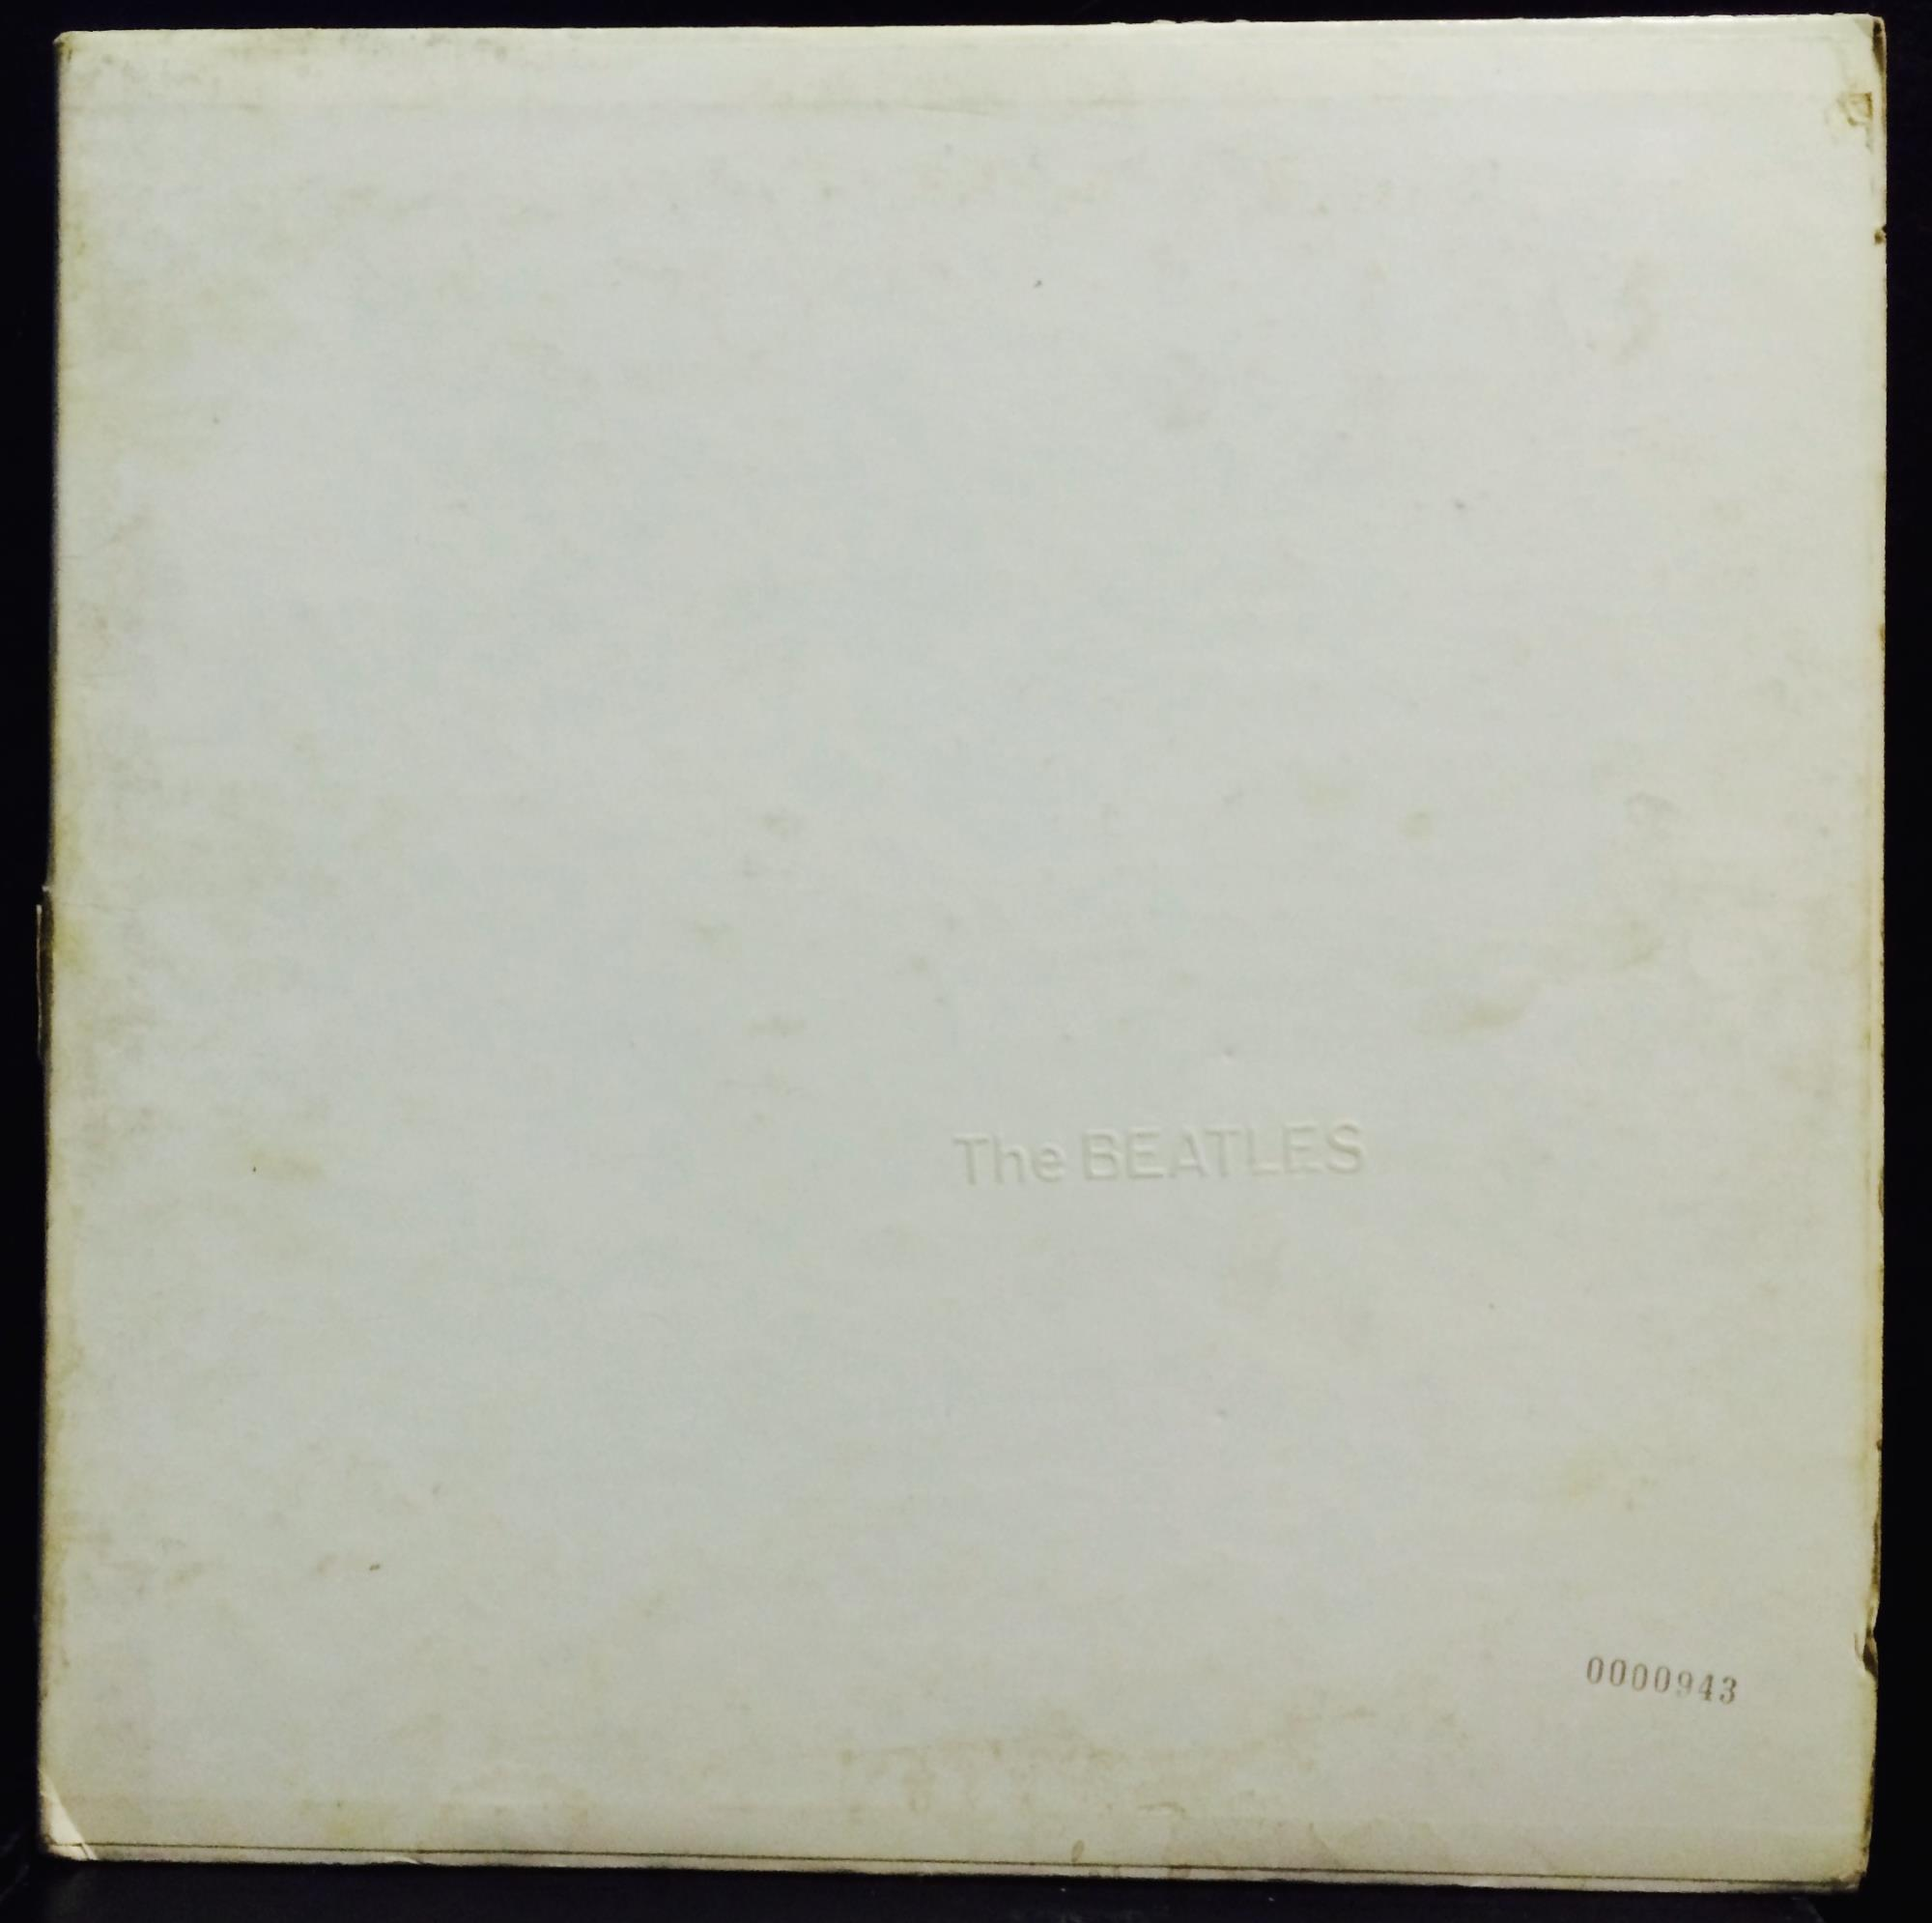 The beatles white album 2 lp vg swbo 101 us low 0000943 photos label apple records format33 rpm 12 lp stereo country united states vinyl condition vg cover condition vg year released 1968 lp quantity 2 maxwellsz